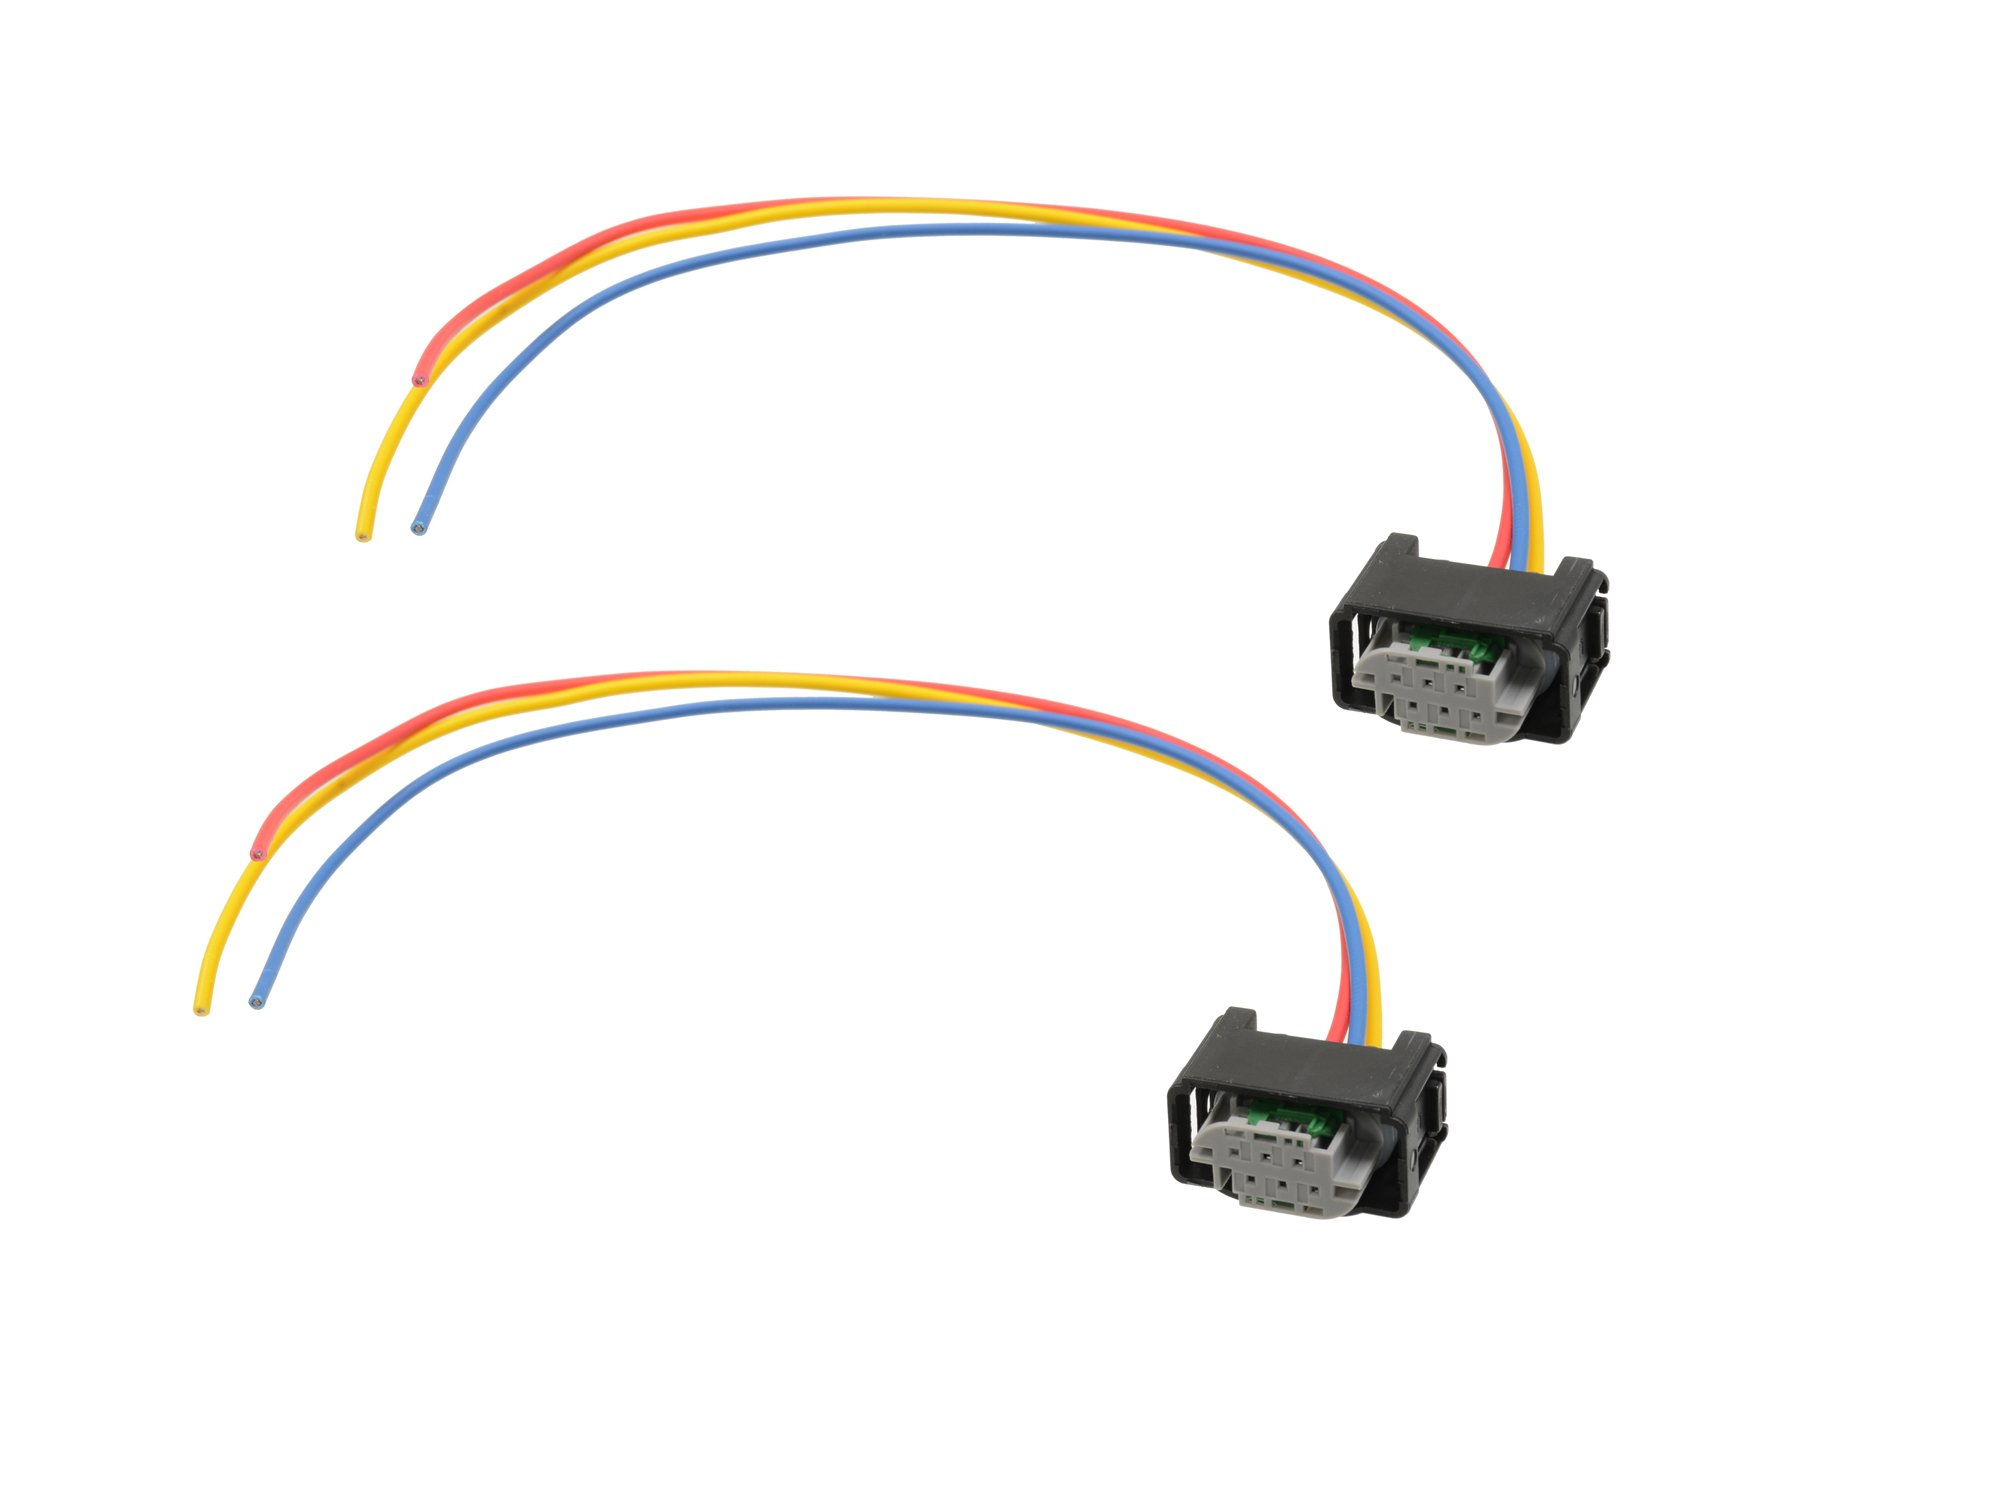 Michigan Motorsports Height Sensor Connector Harness Pigtail 3 Wire Clip For Land Rover Replacement Ymq503220